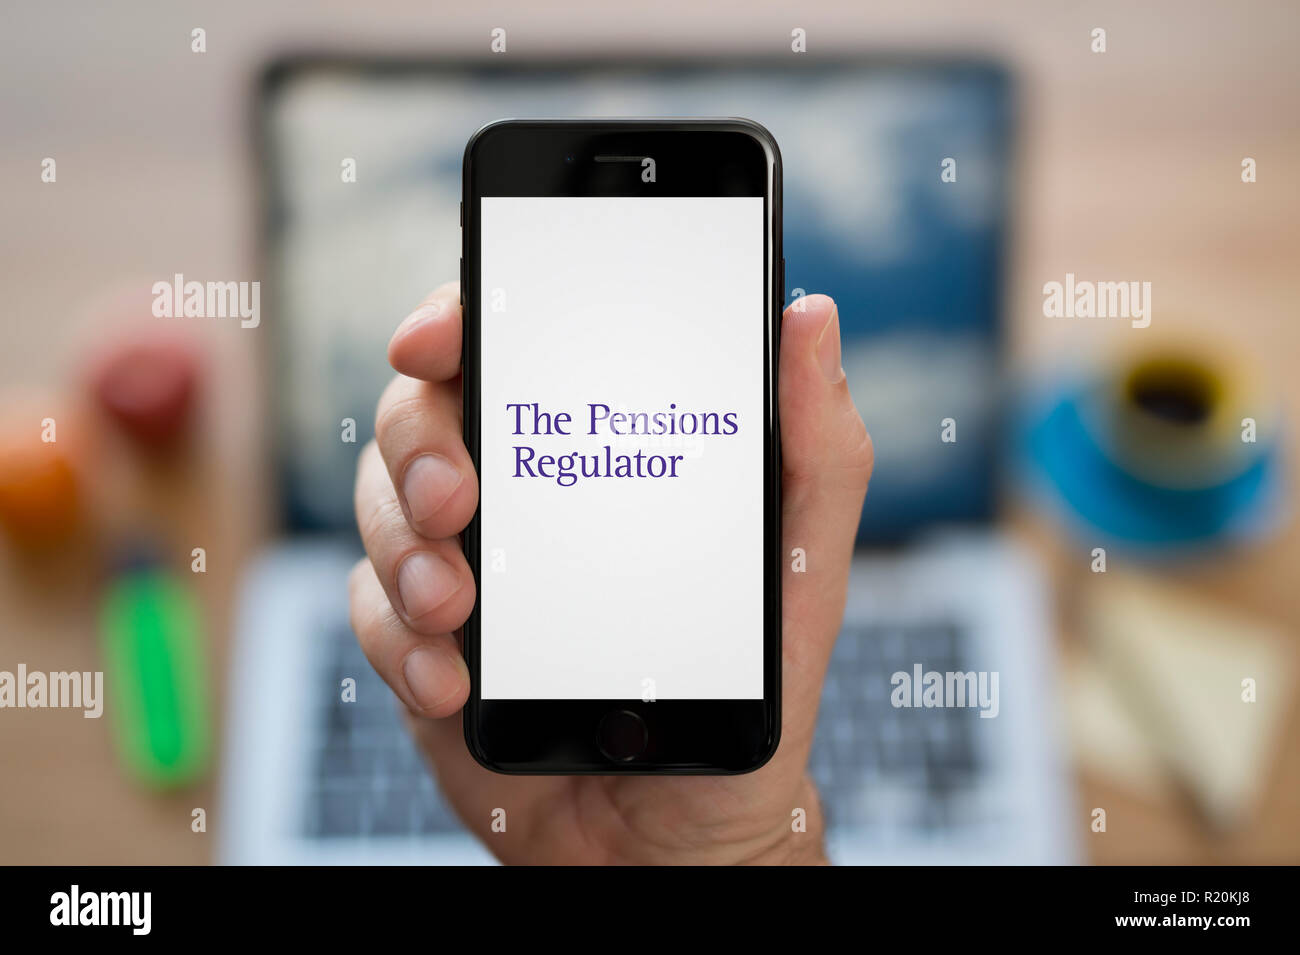 A man looks at his iPhone which displays the The Pensions Regulator logo, while sat at his computer desk (Editorial use only). - Stock Image